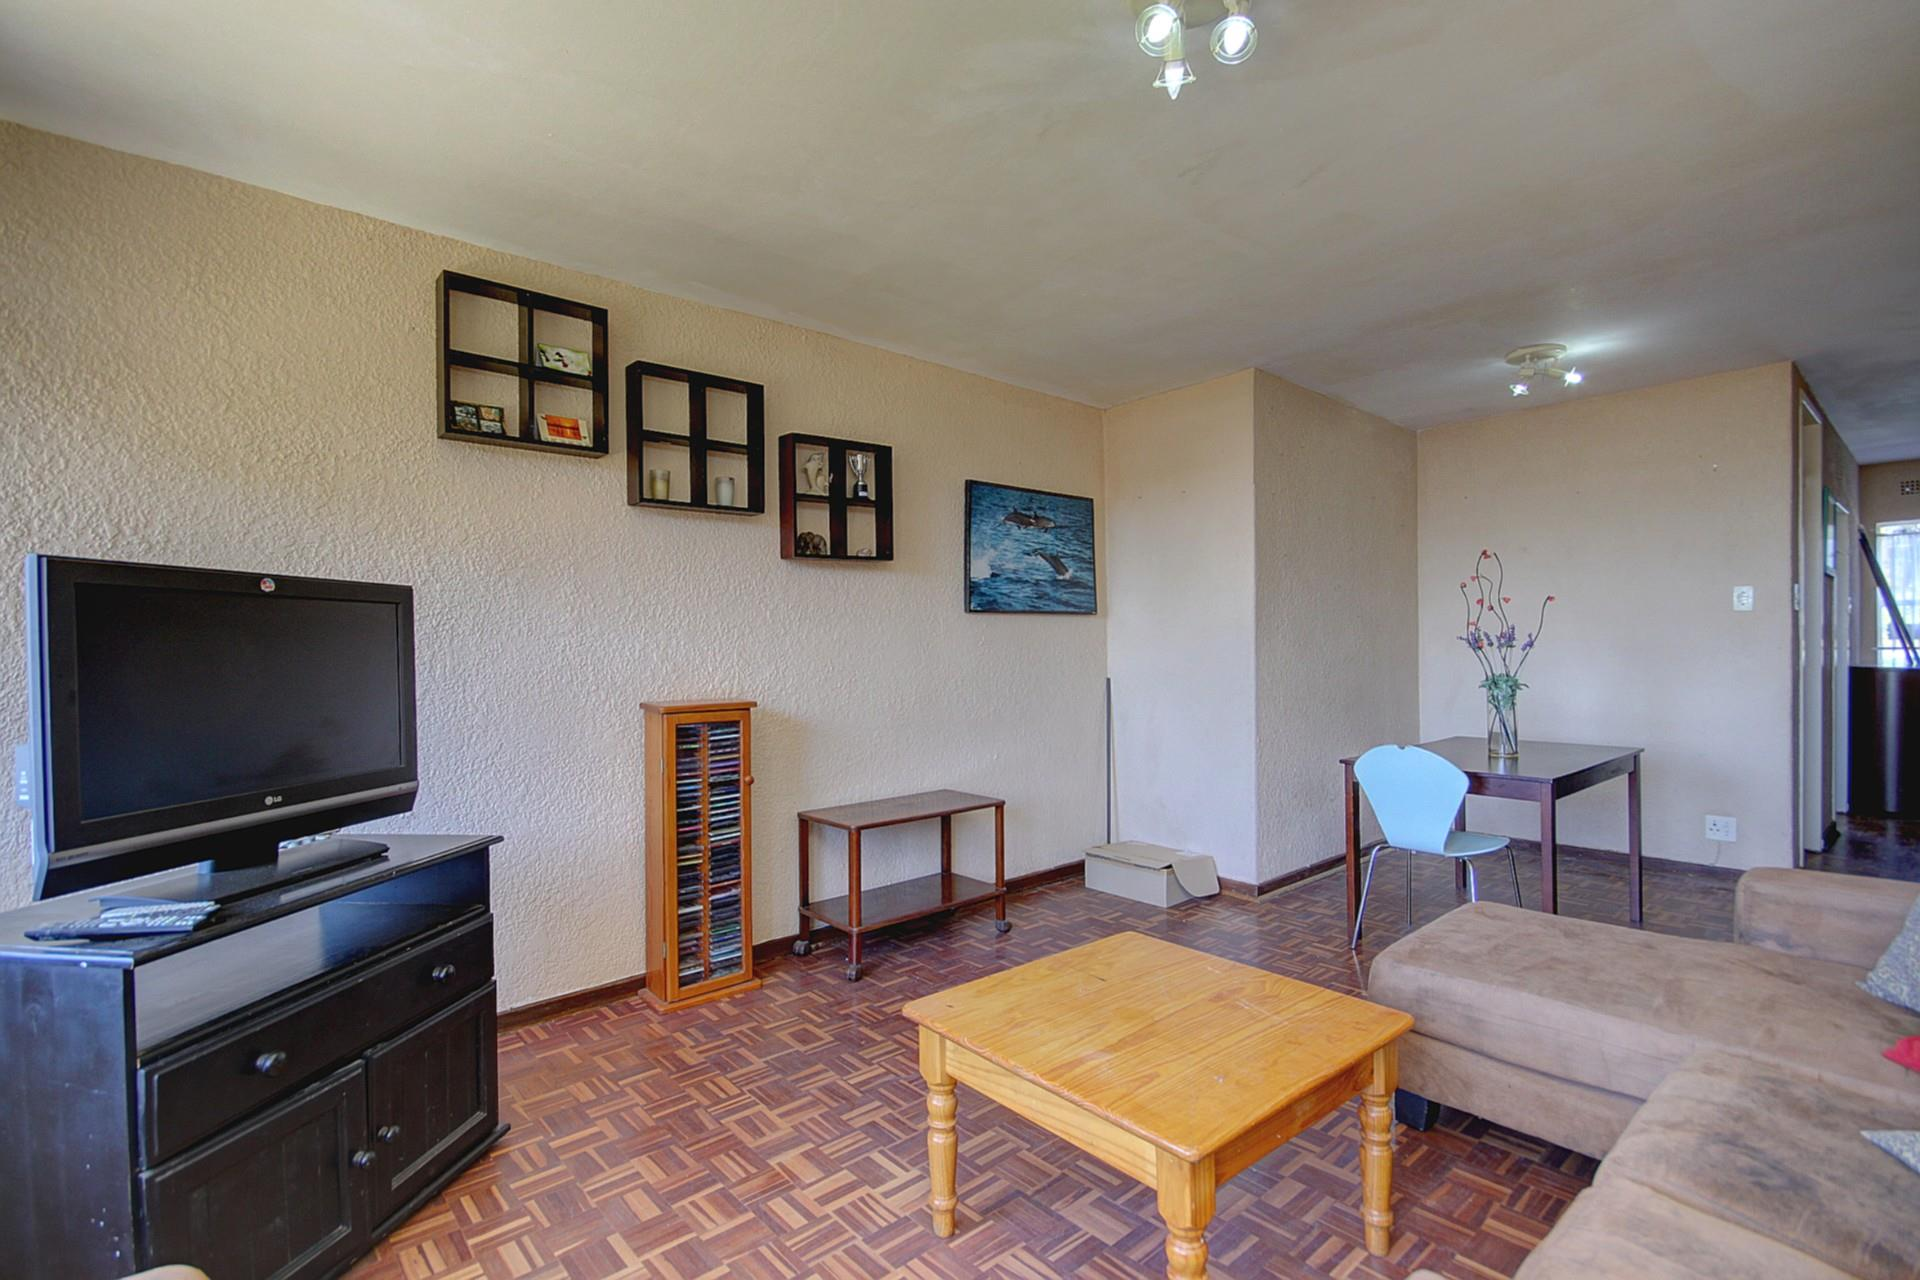 2 Bedroom House For Sale in Ferndale